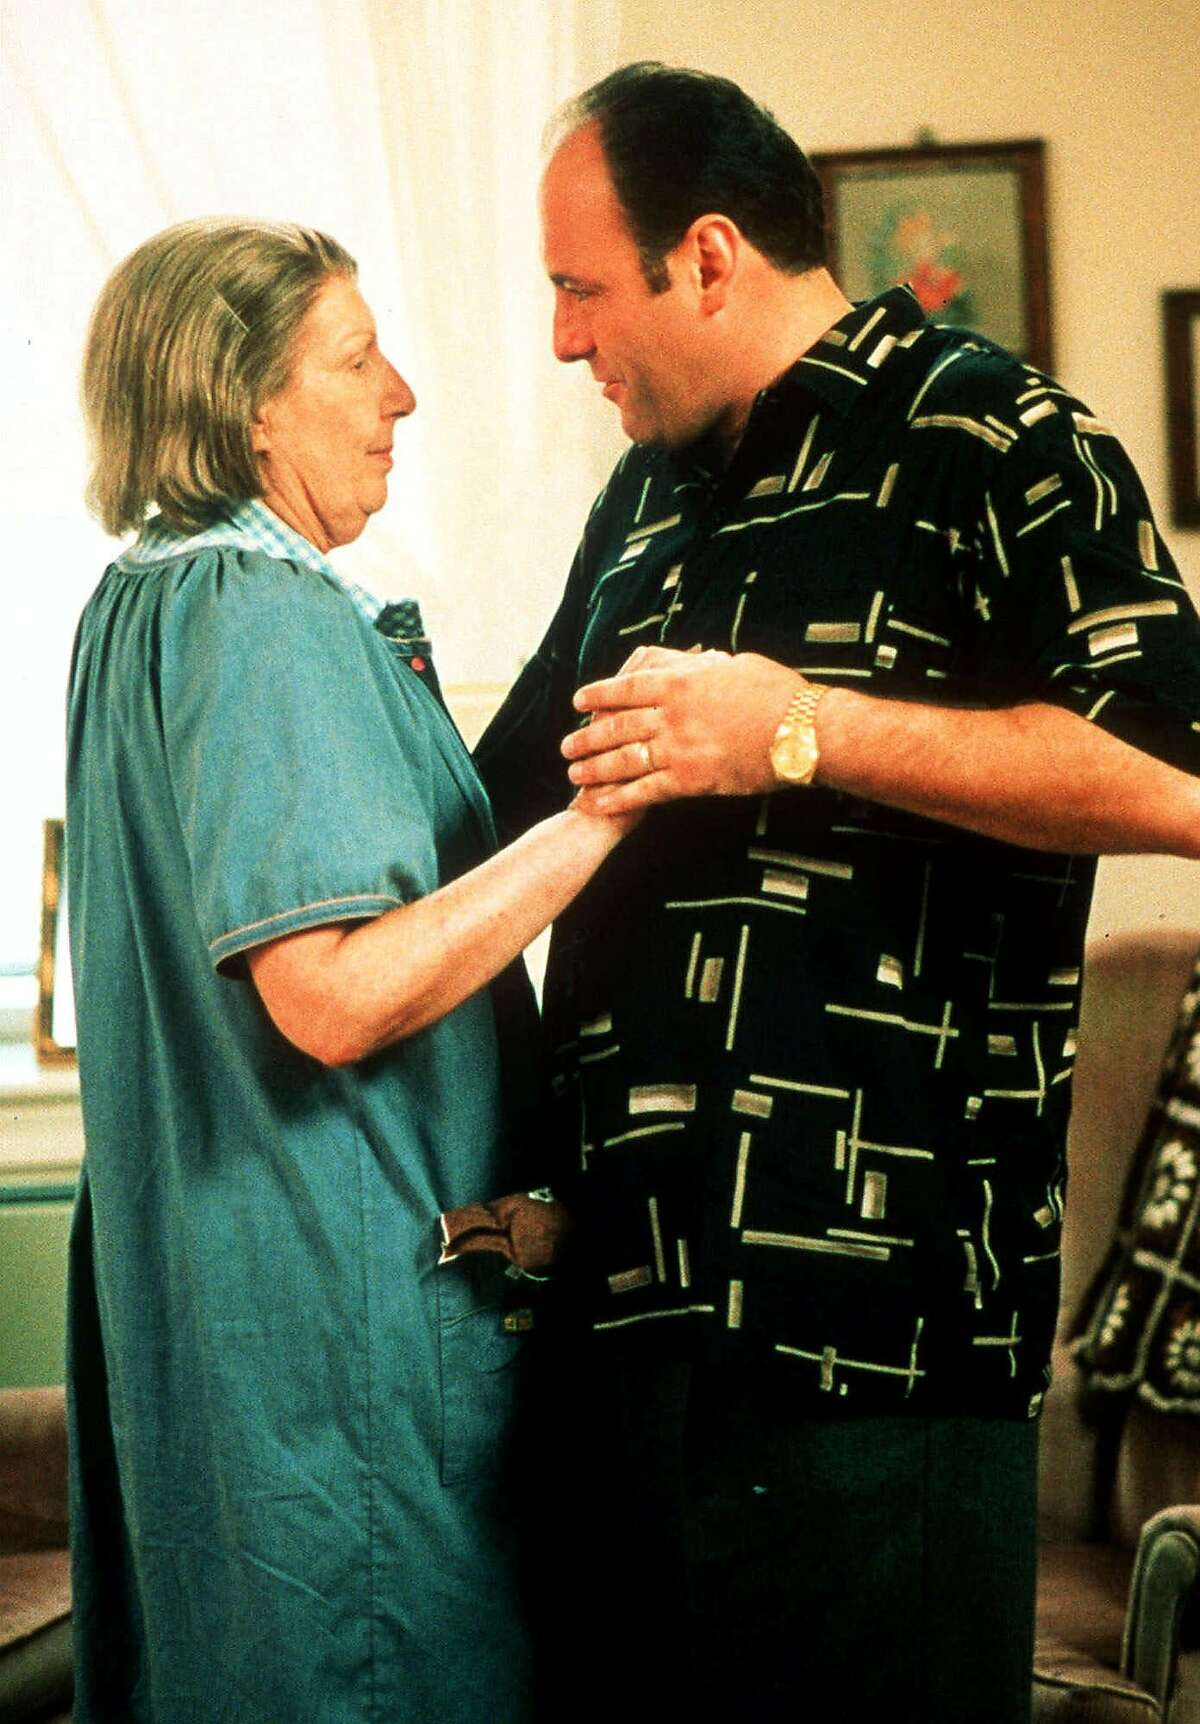 """FILE--Nancy Marchand and James Gandolfini, who play mother and son in the hit HBO drama series """"The Sopranos"""", are shown in this undated file photo. The series received 18 Emmy nominations in Los Angeles, Calif., Thursday, July 20, 2000. Marchand, who died in June, was nominated for best supporting actress in a drama series. Gandolfini was nominated for Best Actor.(AP Photo/Anthony Neste, HBO, File)"""